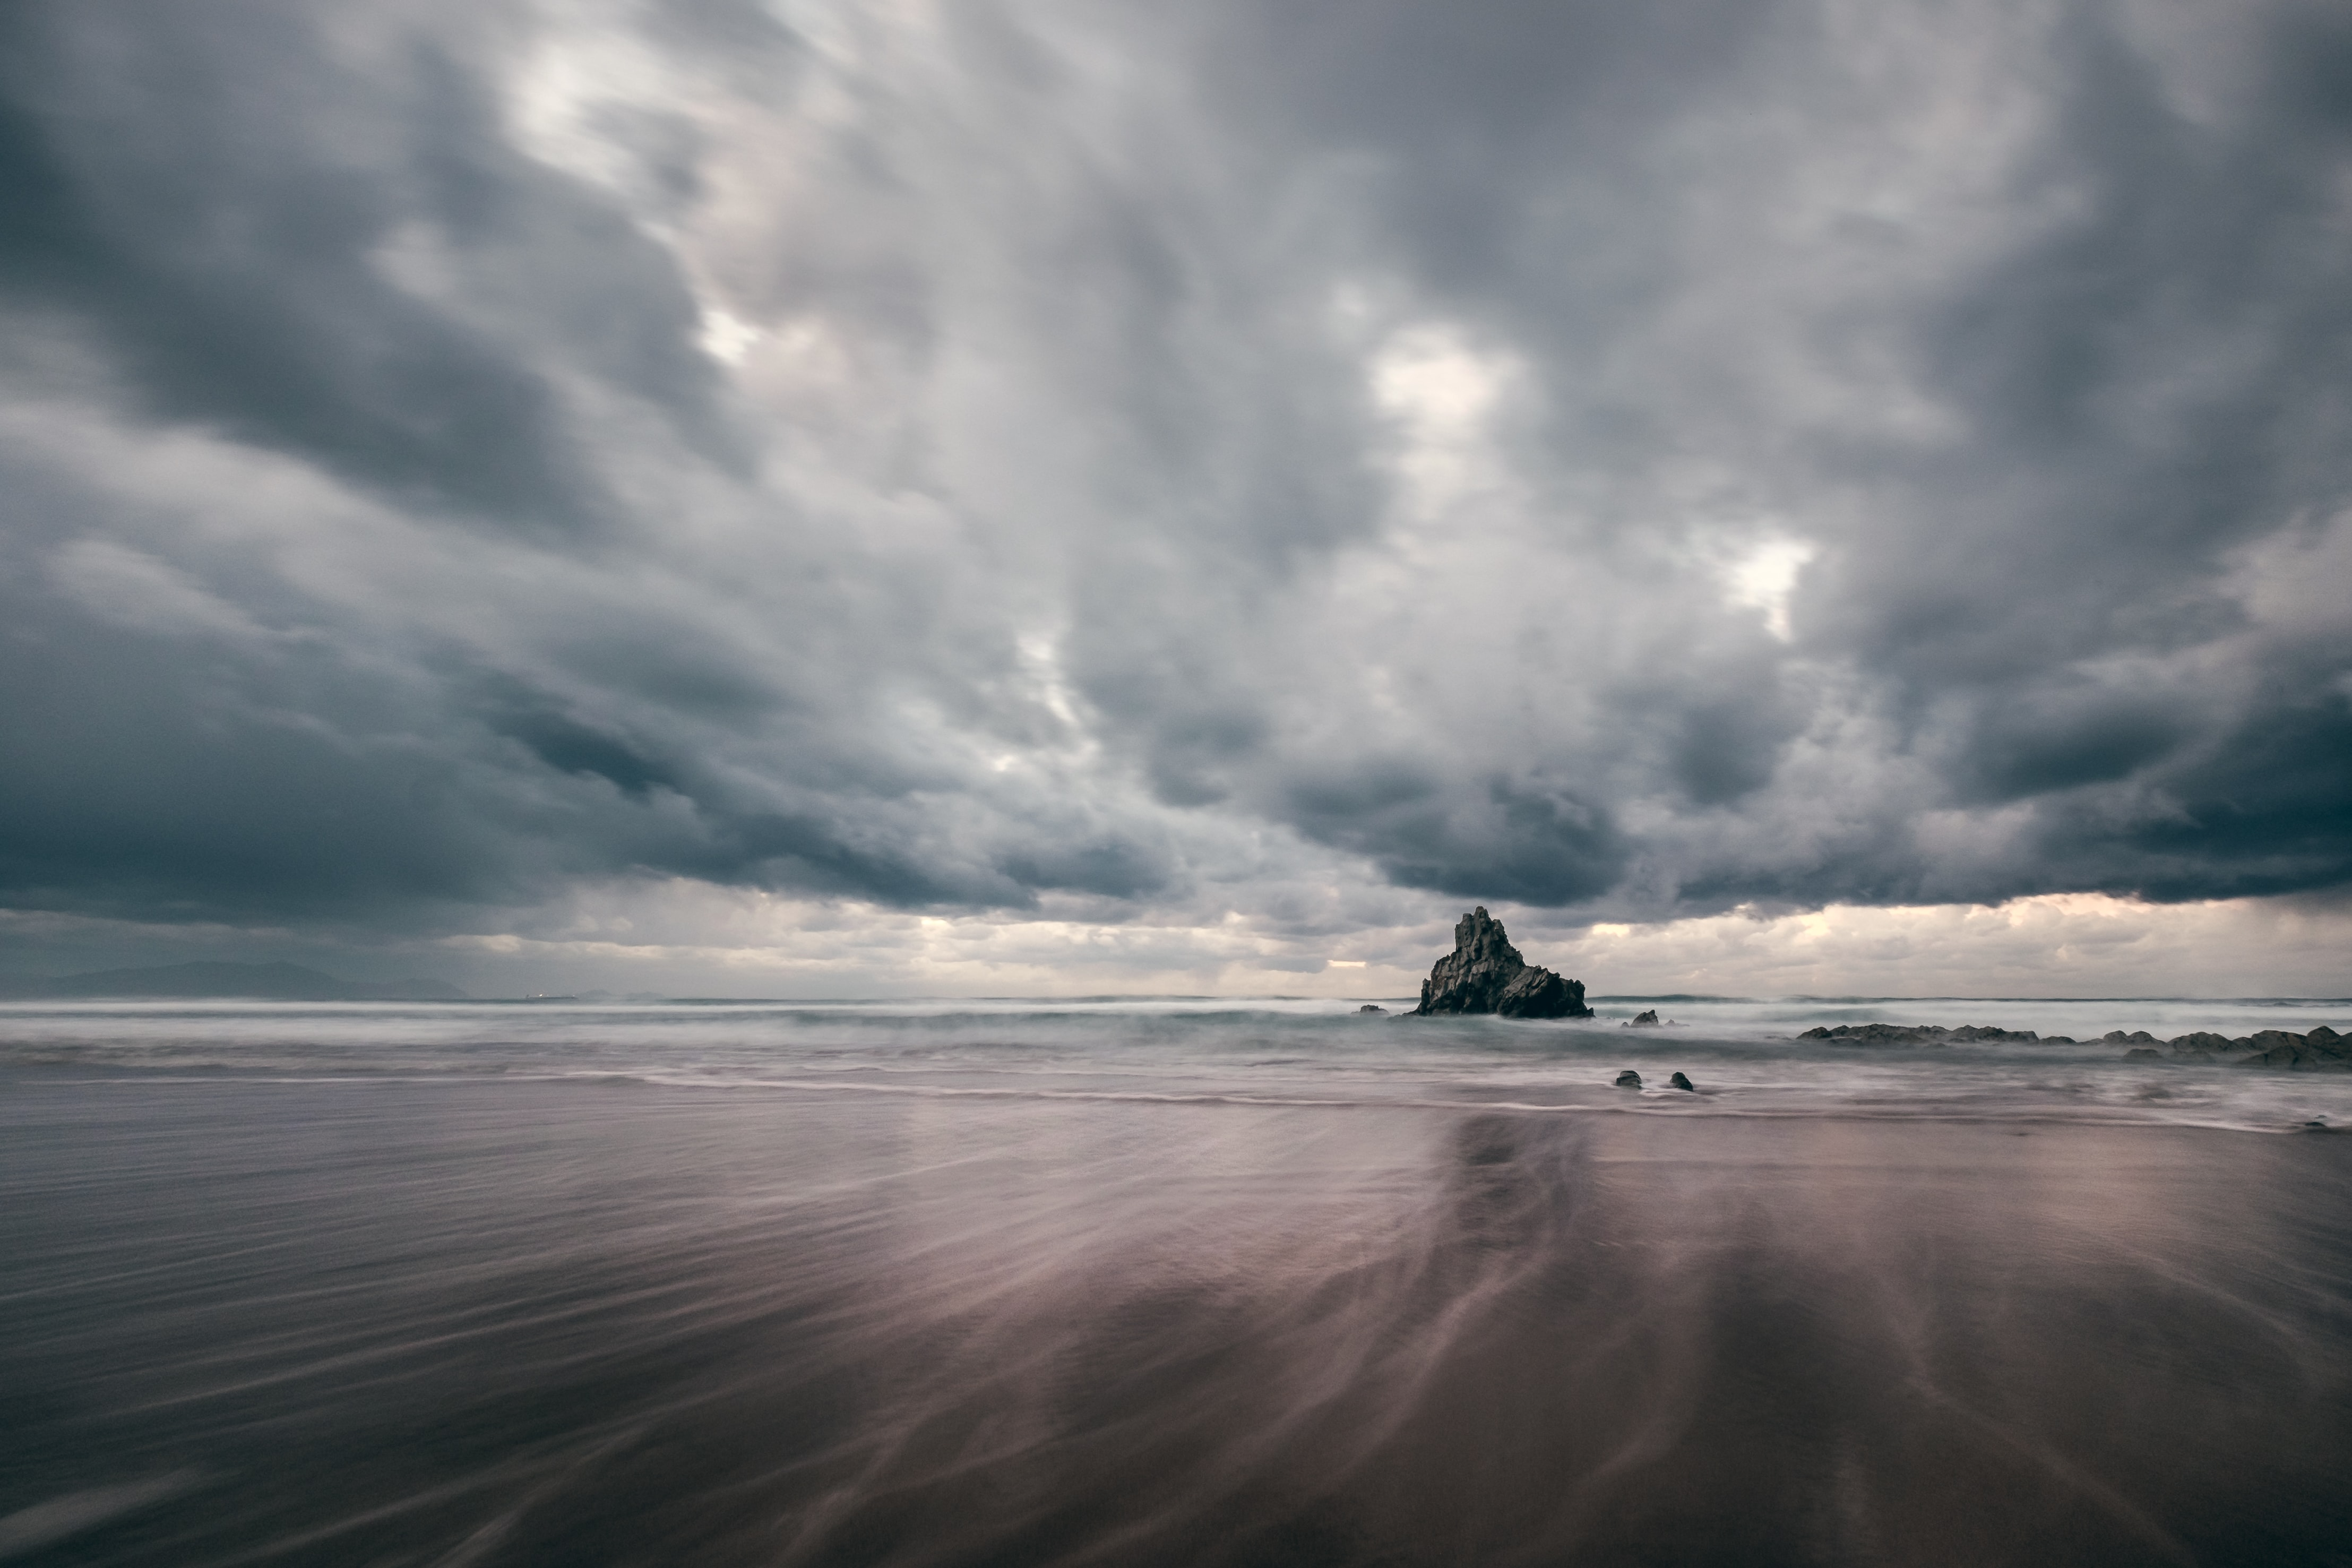 black rock formation on sea under gray clouds